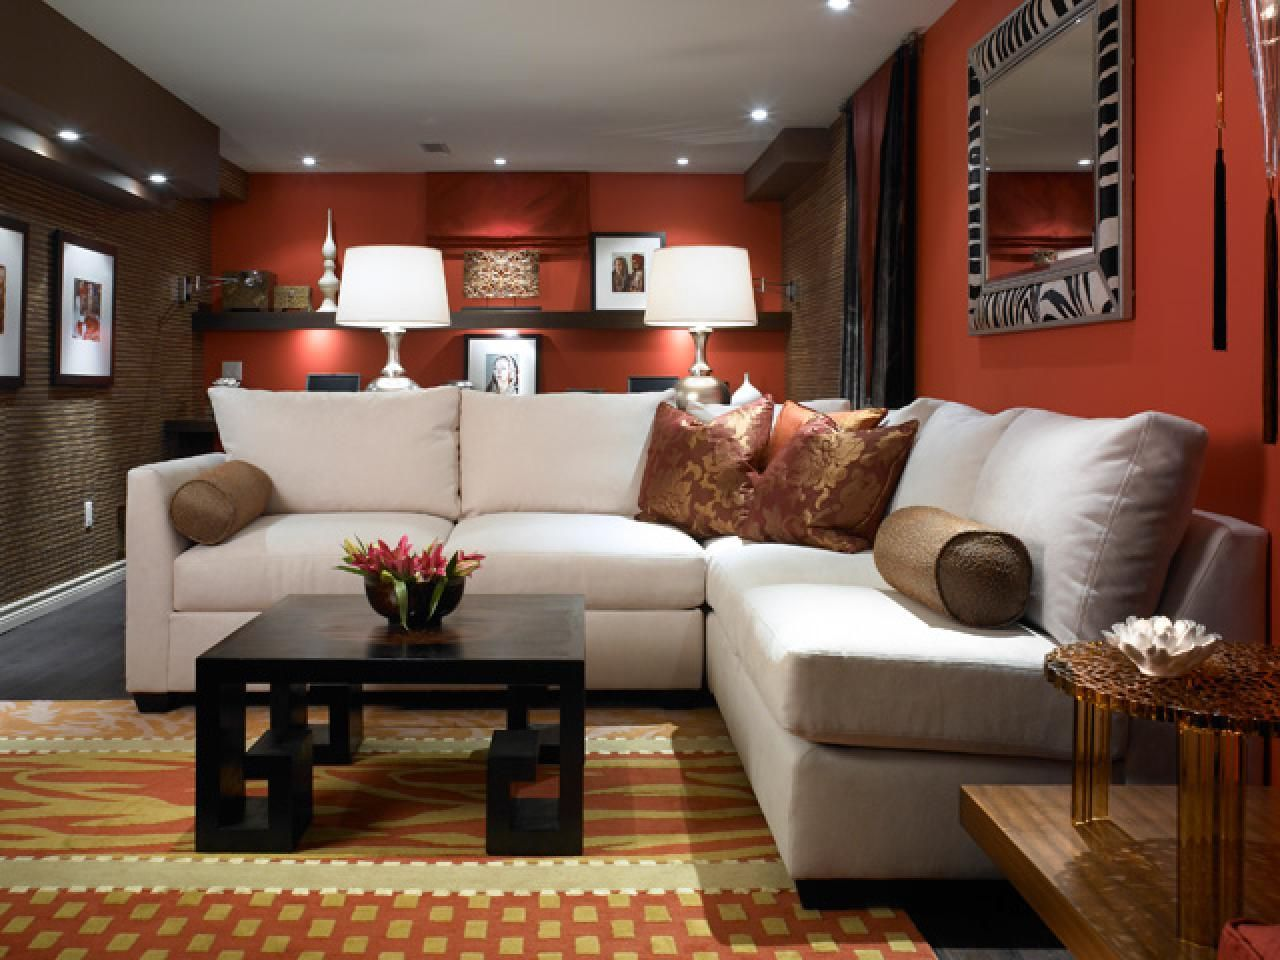 Basement Living Room Designs Mesmerizing Basement Makeover Ideas From Candice Olson  Basement Makeover Design Ideas